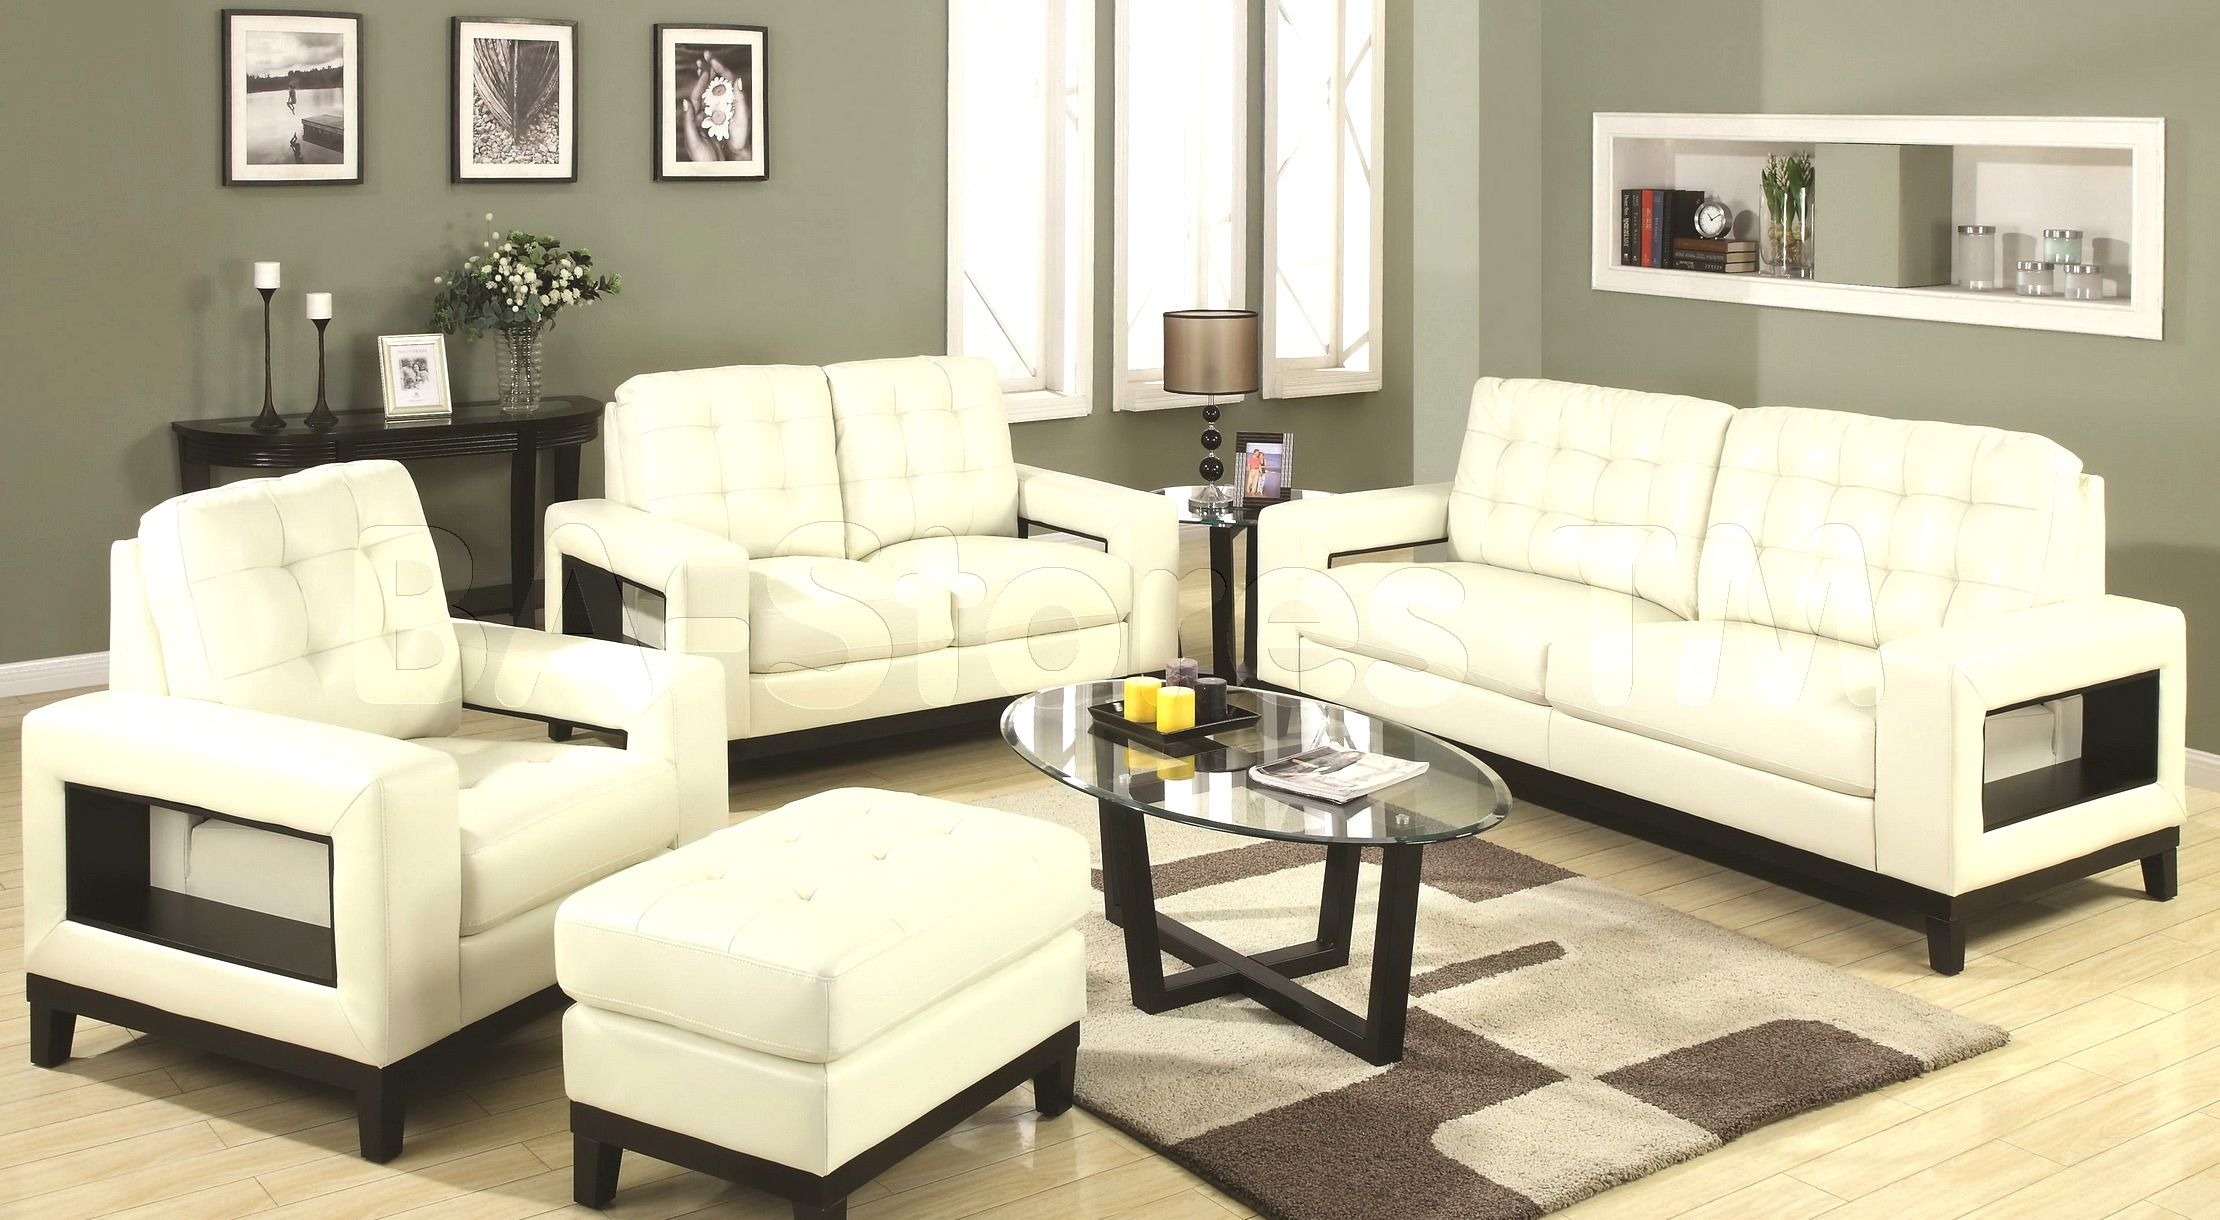 cool Sofas Sets , Elegant Sofas Sets 79 Sofas and Couches Ideas with ...